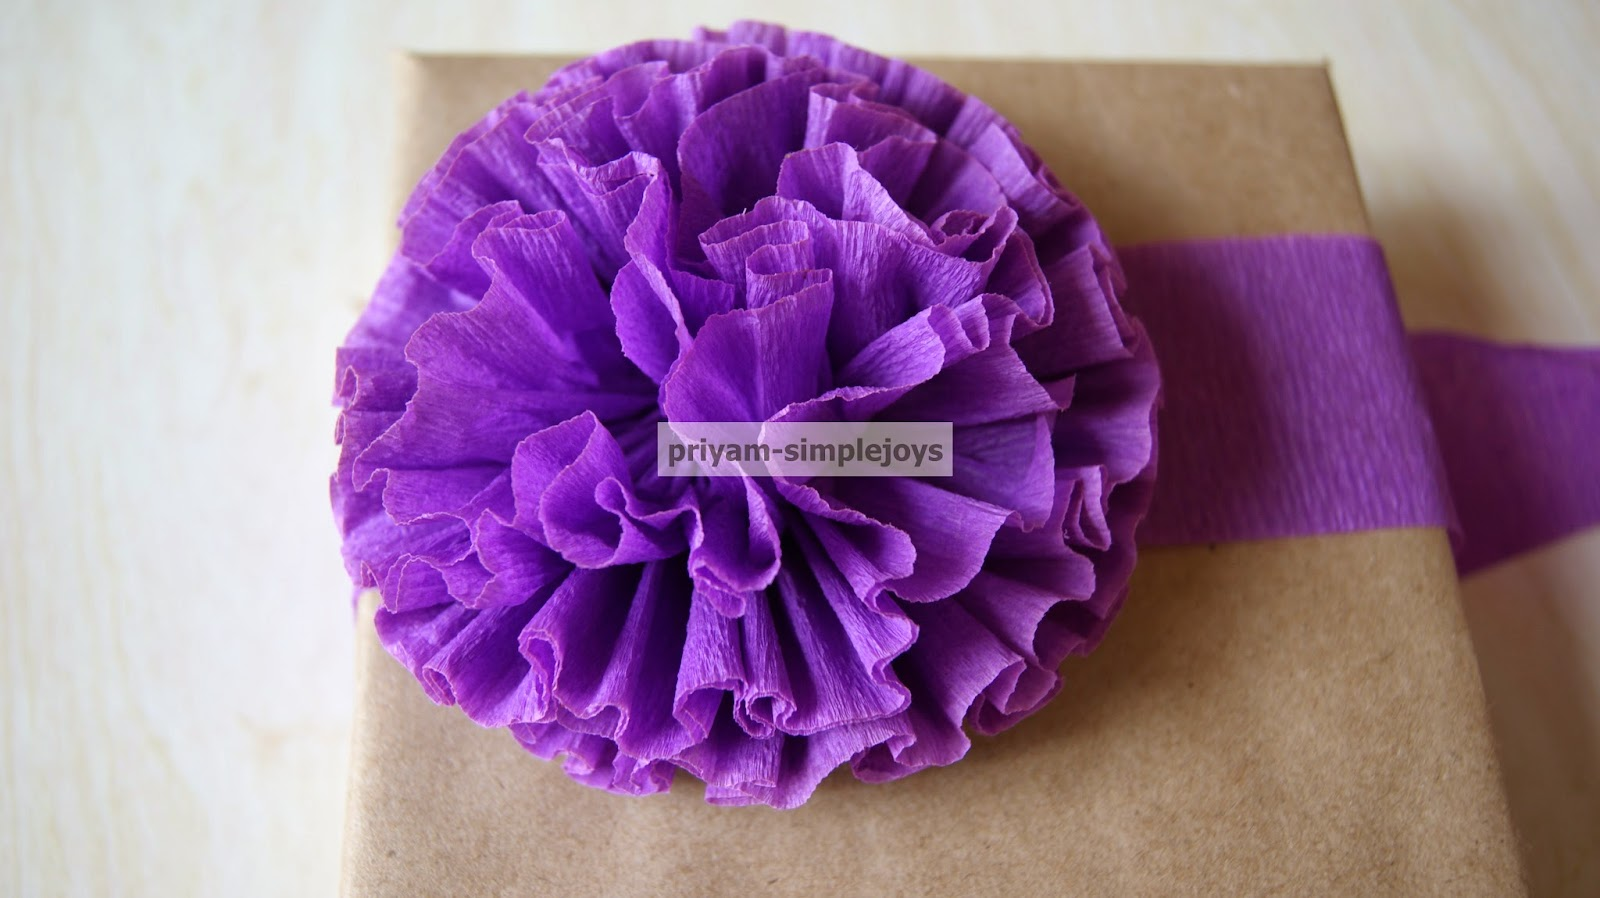 Simplejoys crepe paper flowers crepe paper flowers mightylinksfo Images